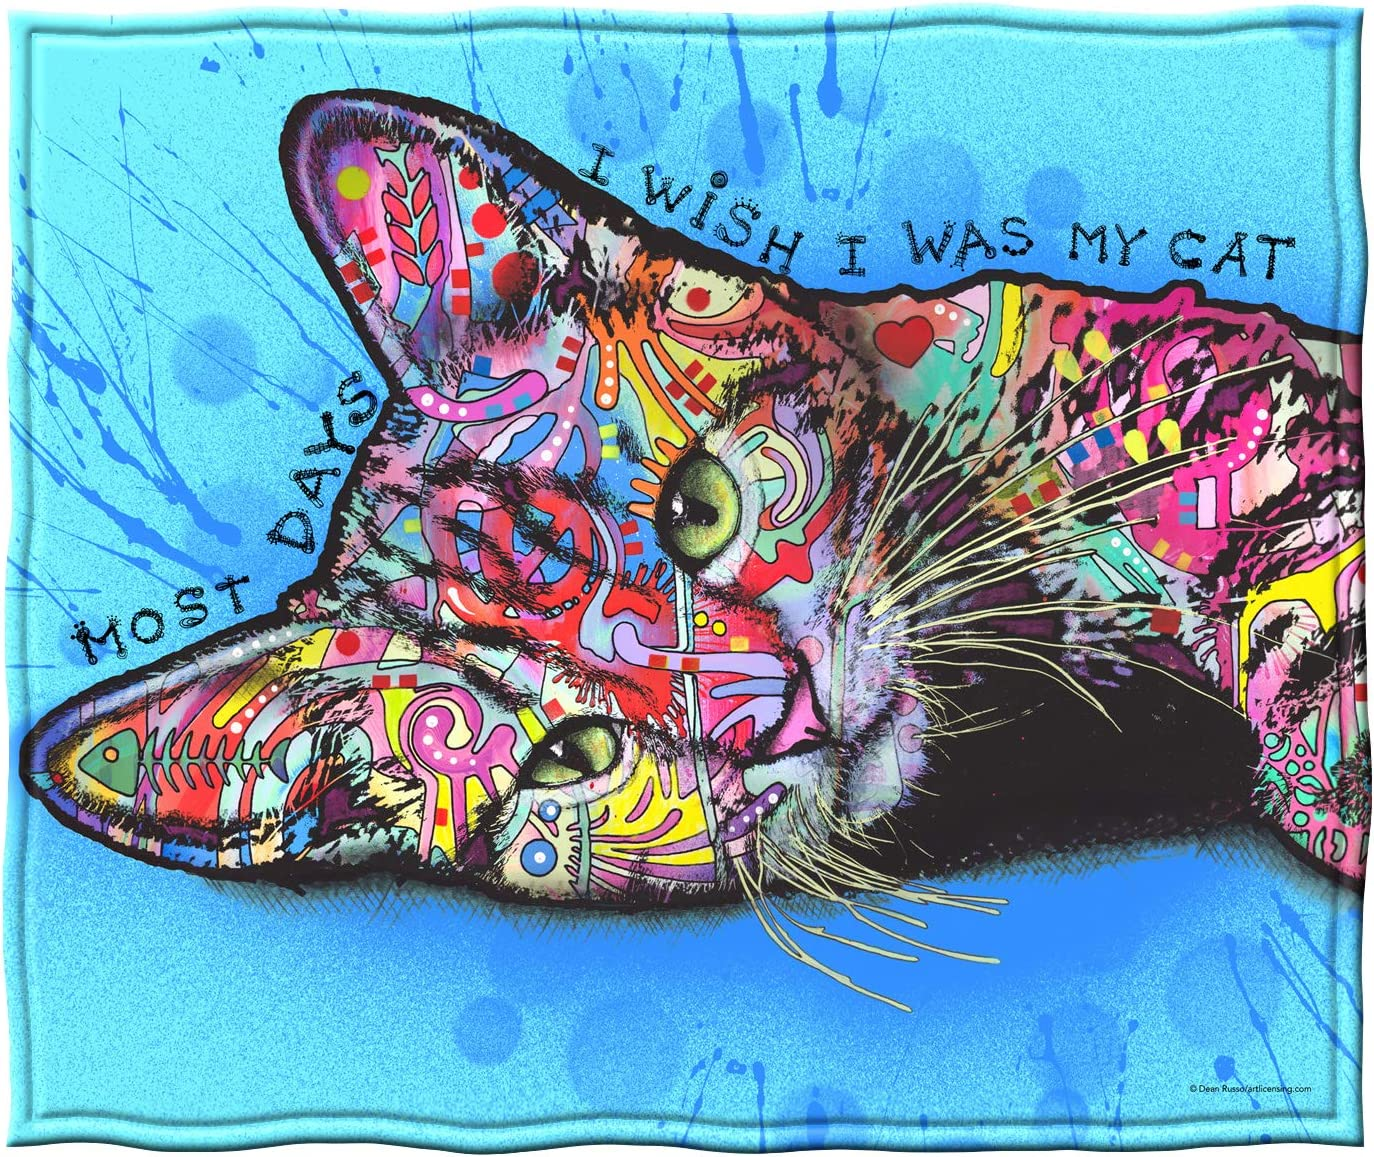 Dawhud Direct Fleece Throw Blanket by Dean Russo (Wish I was My Cat)